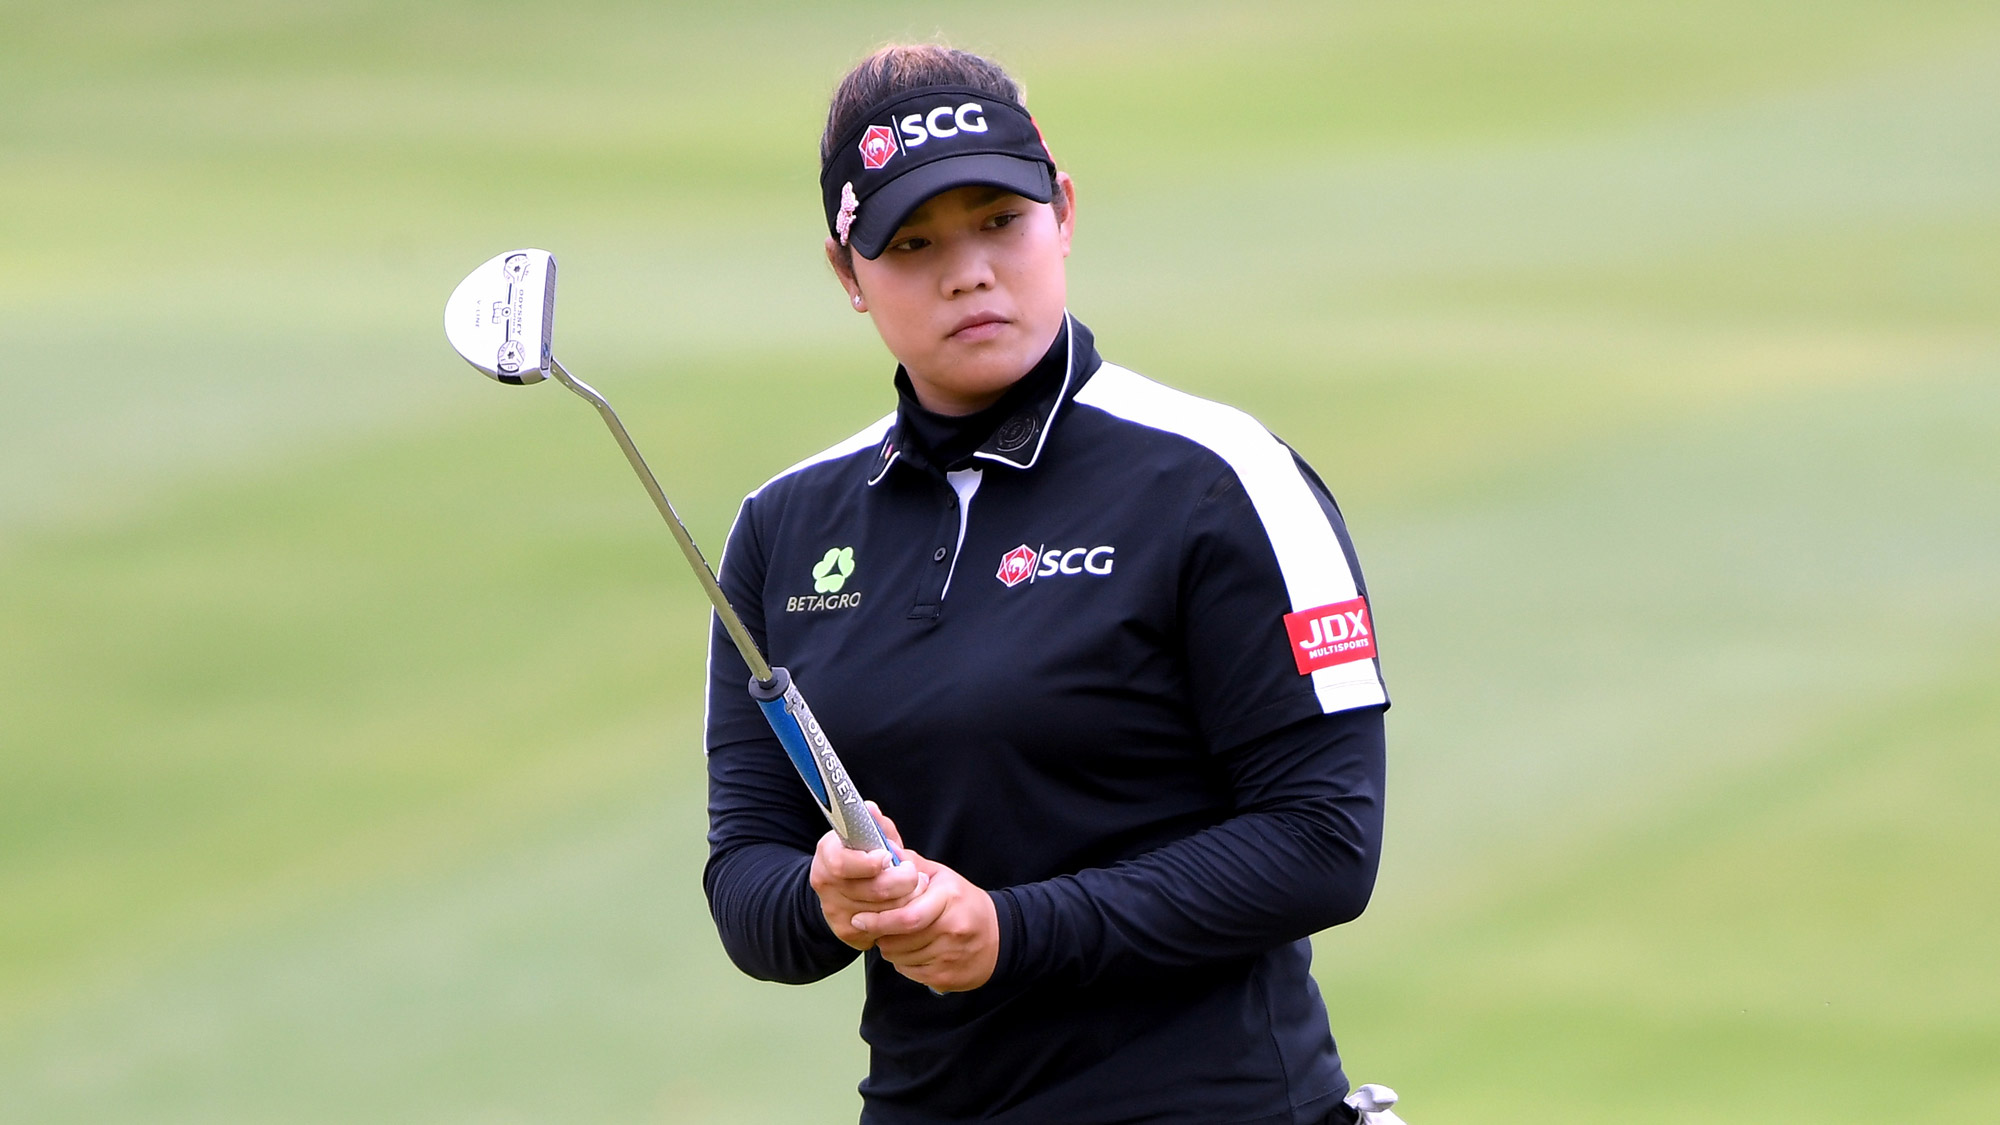 Ariya Jutanugarn at the LOTTE Championship